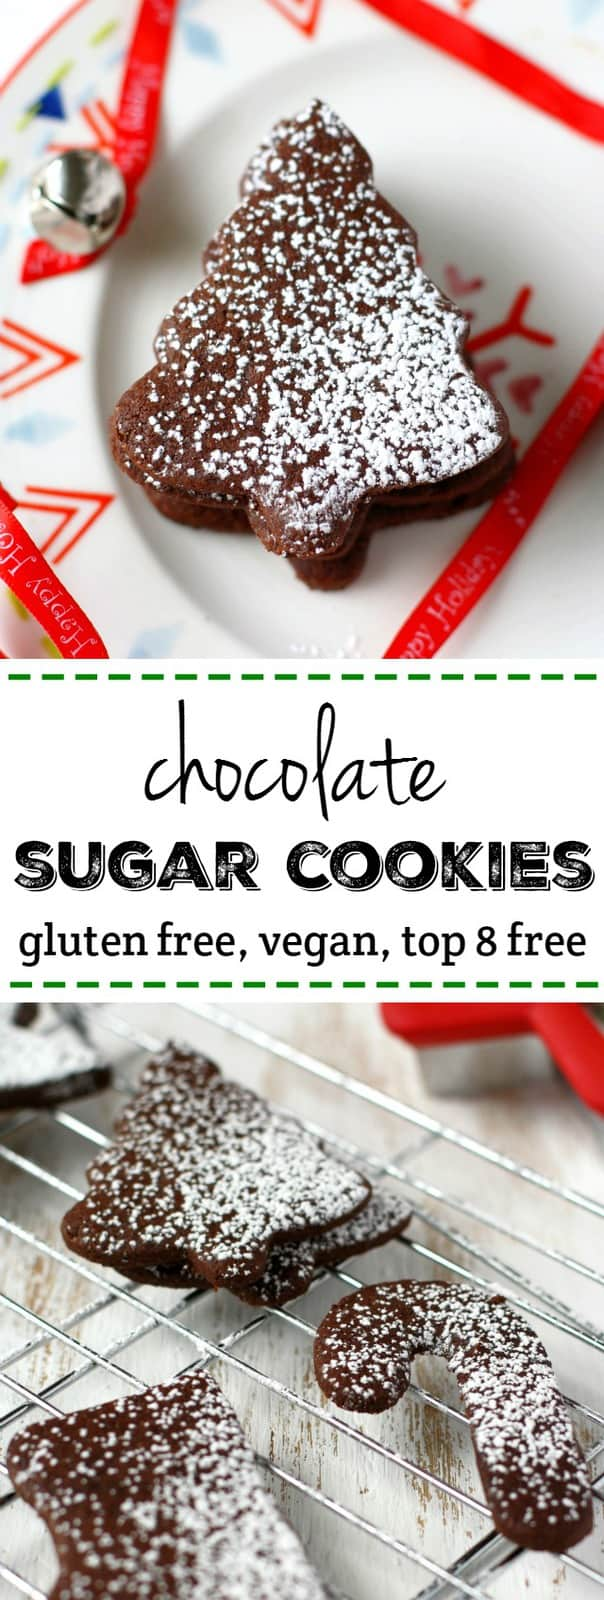 Gluten Free and Vegan Chocolate Sugar Cookies. - The Pretty Bee